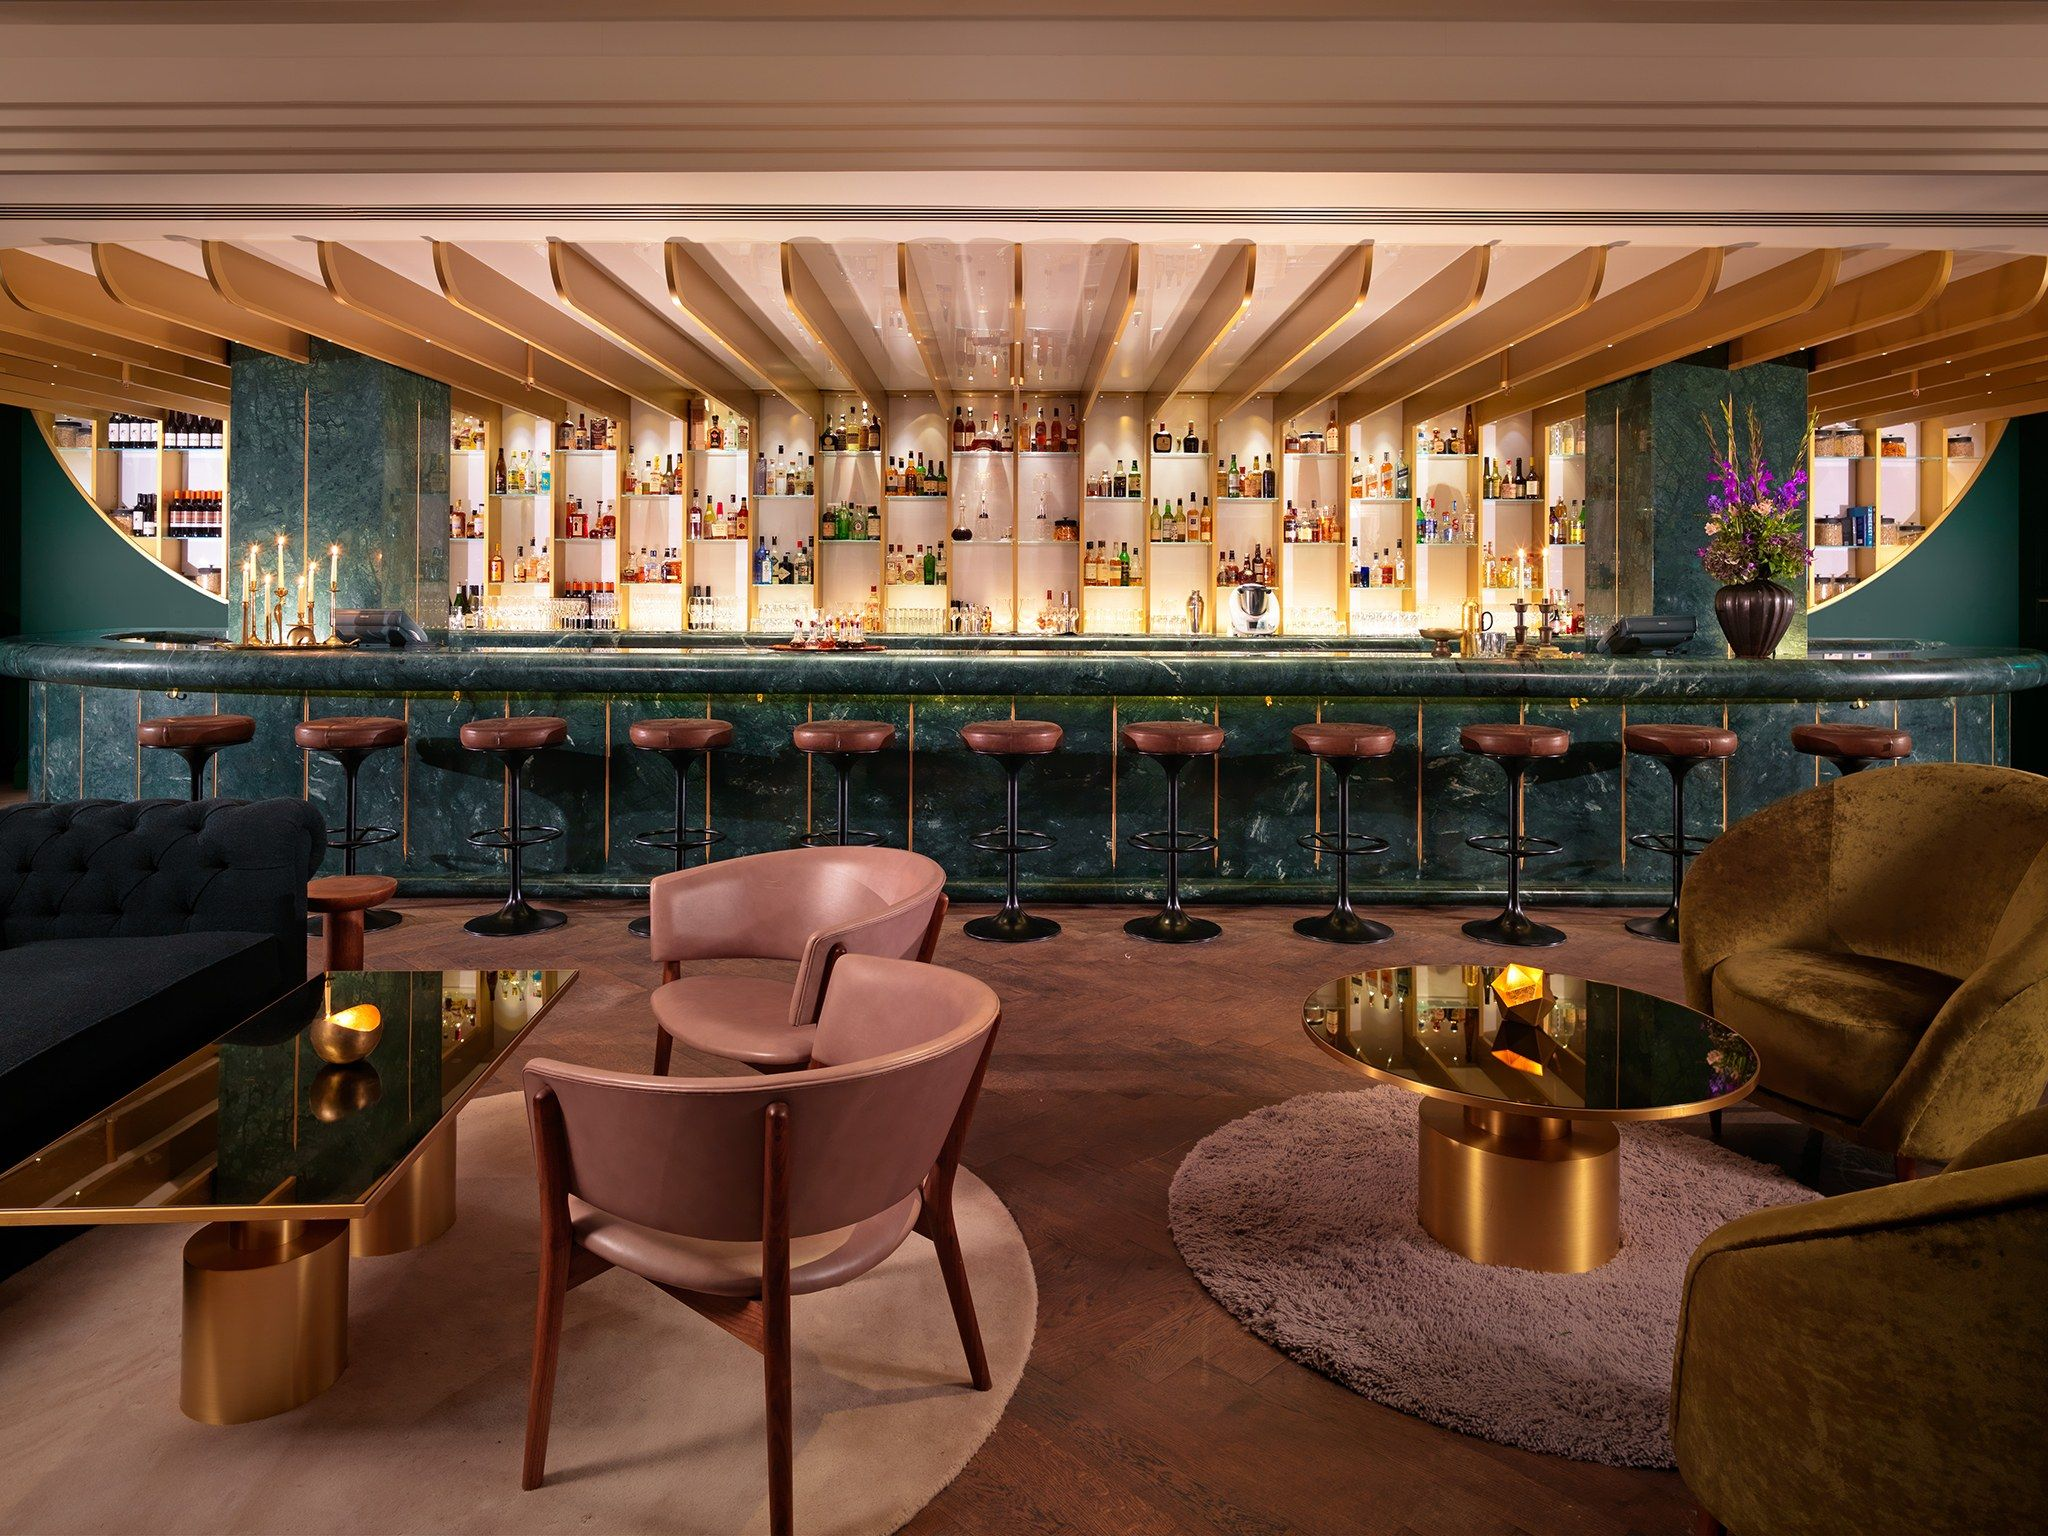 These Are The Best Bars In London From Can T Miss Hotel Lobbies To Hidden Bars Within A Bar They Re The Classics Cocktail Bar Interior London Bars Hotel Bar